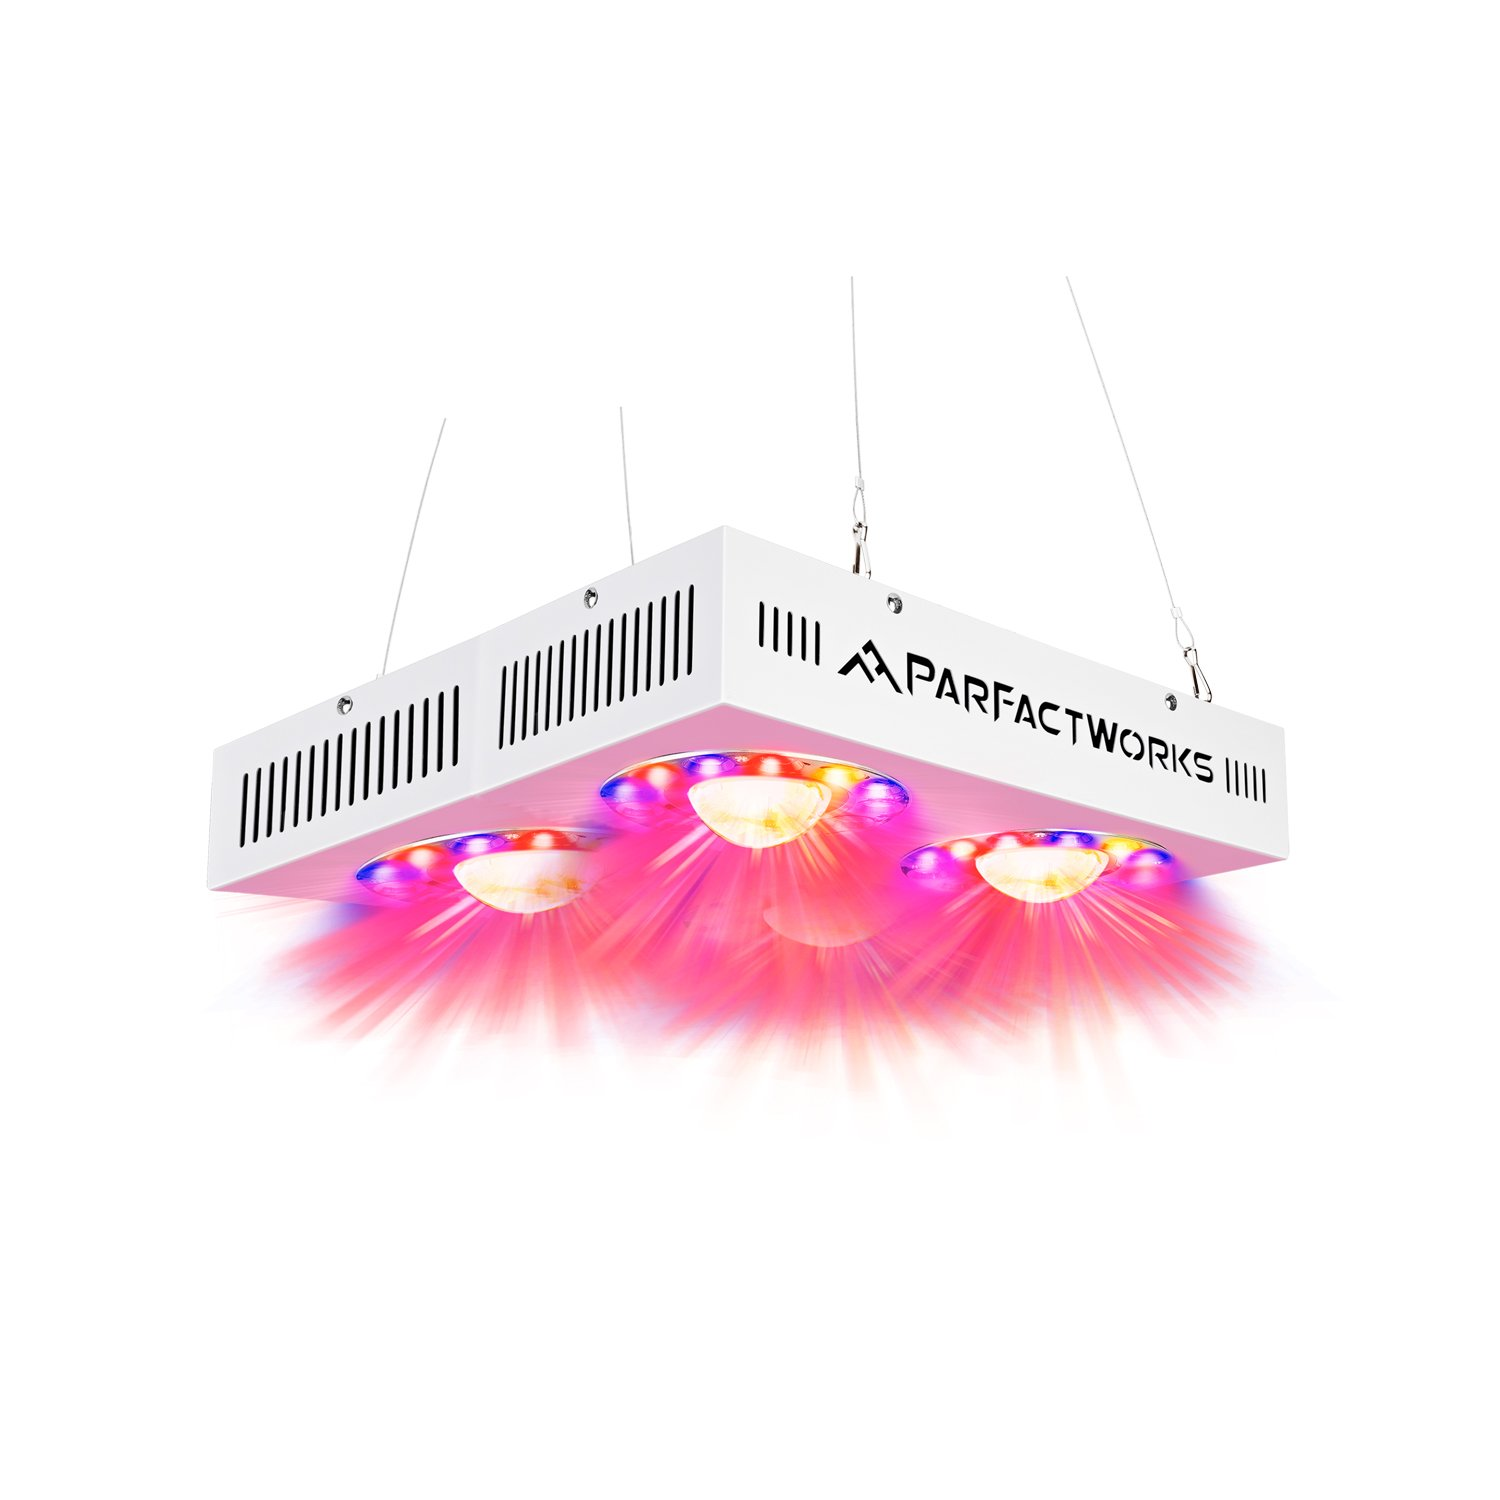 PARFACTWORKS 1000W LED Grow Light, COB Full Spectrum Including UV&IR, Led Vegetable Grow Light for Greenhouse Hydroponic Indoor Gardens All Plant Grow Phases by PARFACTWORKS